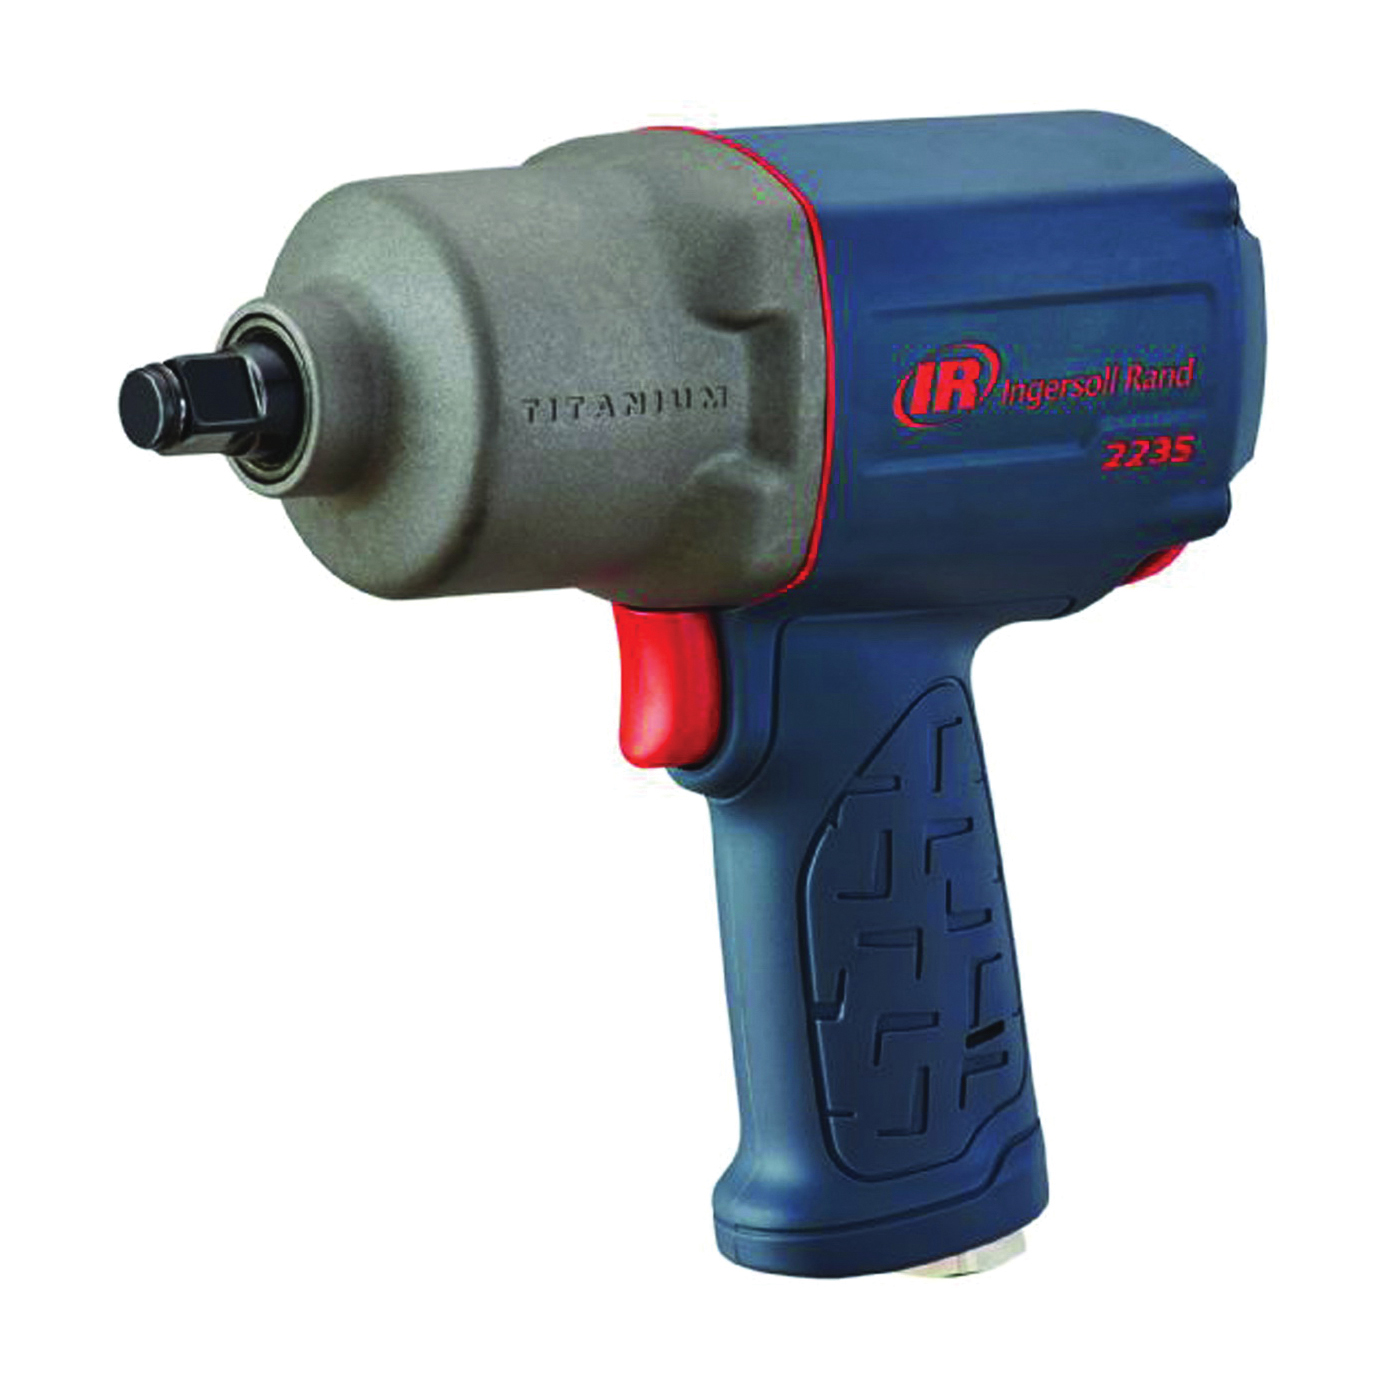 Picture of Ingersoll Rand 2235TIMAX Air Impact Wrench, 1/2 in Drive, 930 ft-lb, 8500 rpm Speed